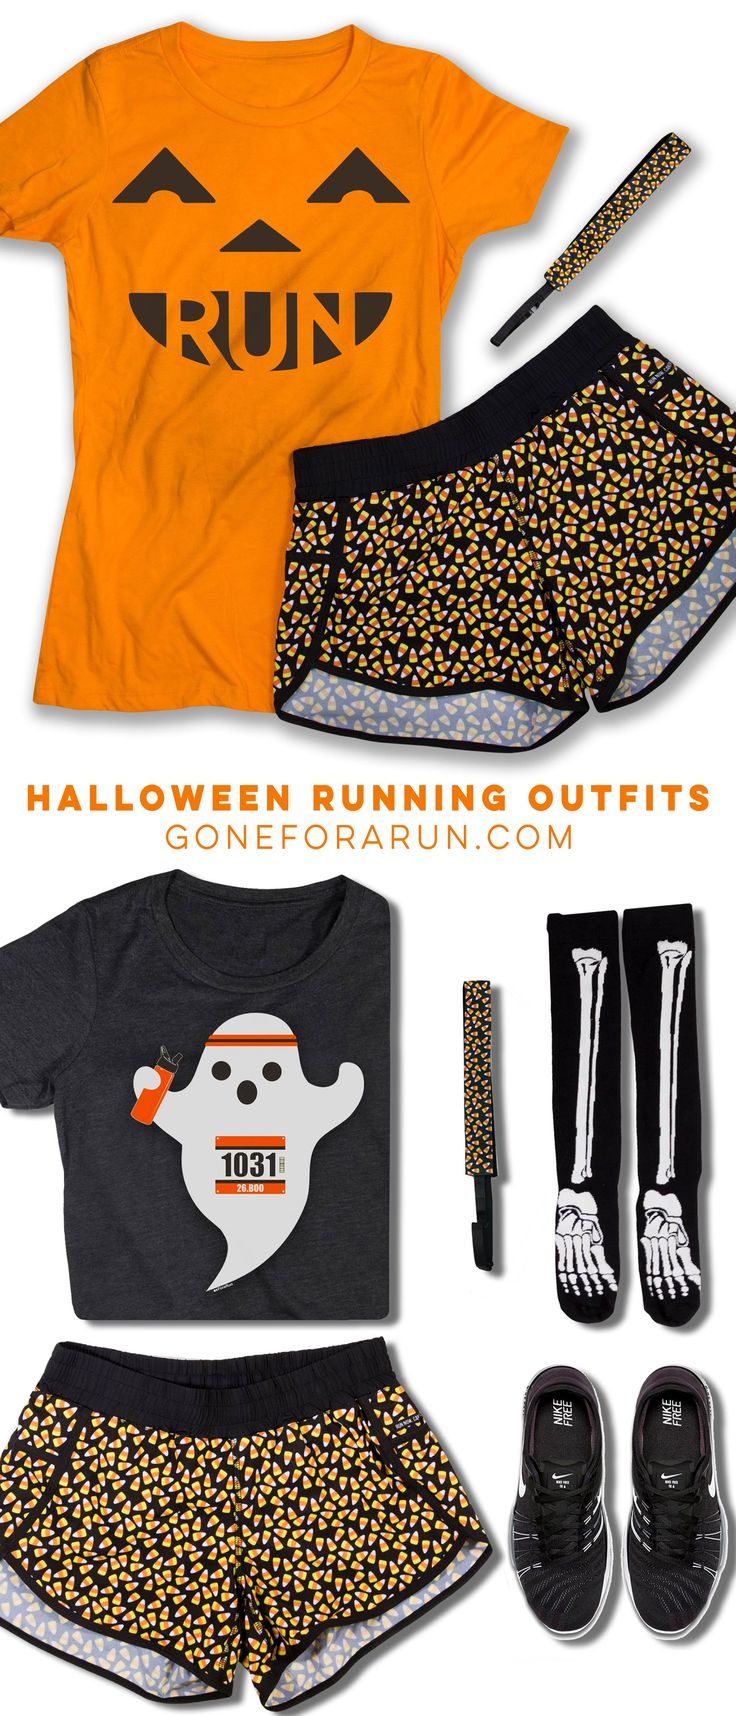 Halloween themed running outfit ideas to add some spooky fun to your runs and races. Halloween tees, tanks running shorts, socks and more.